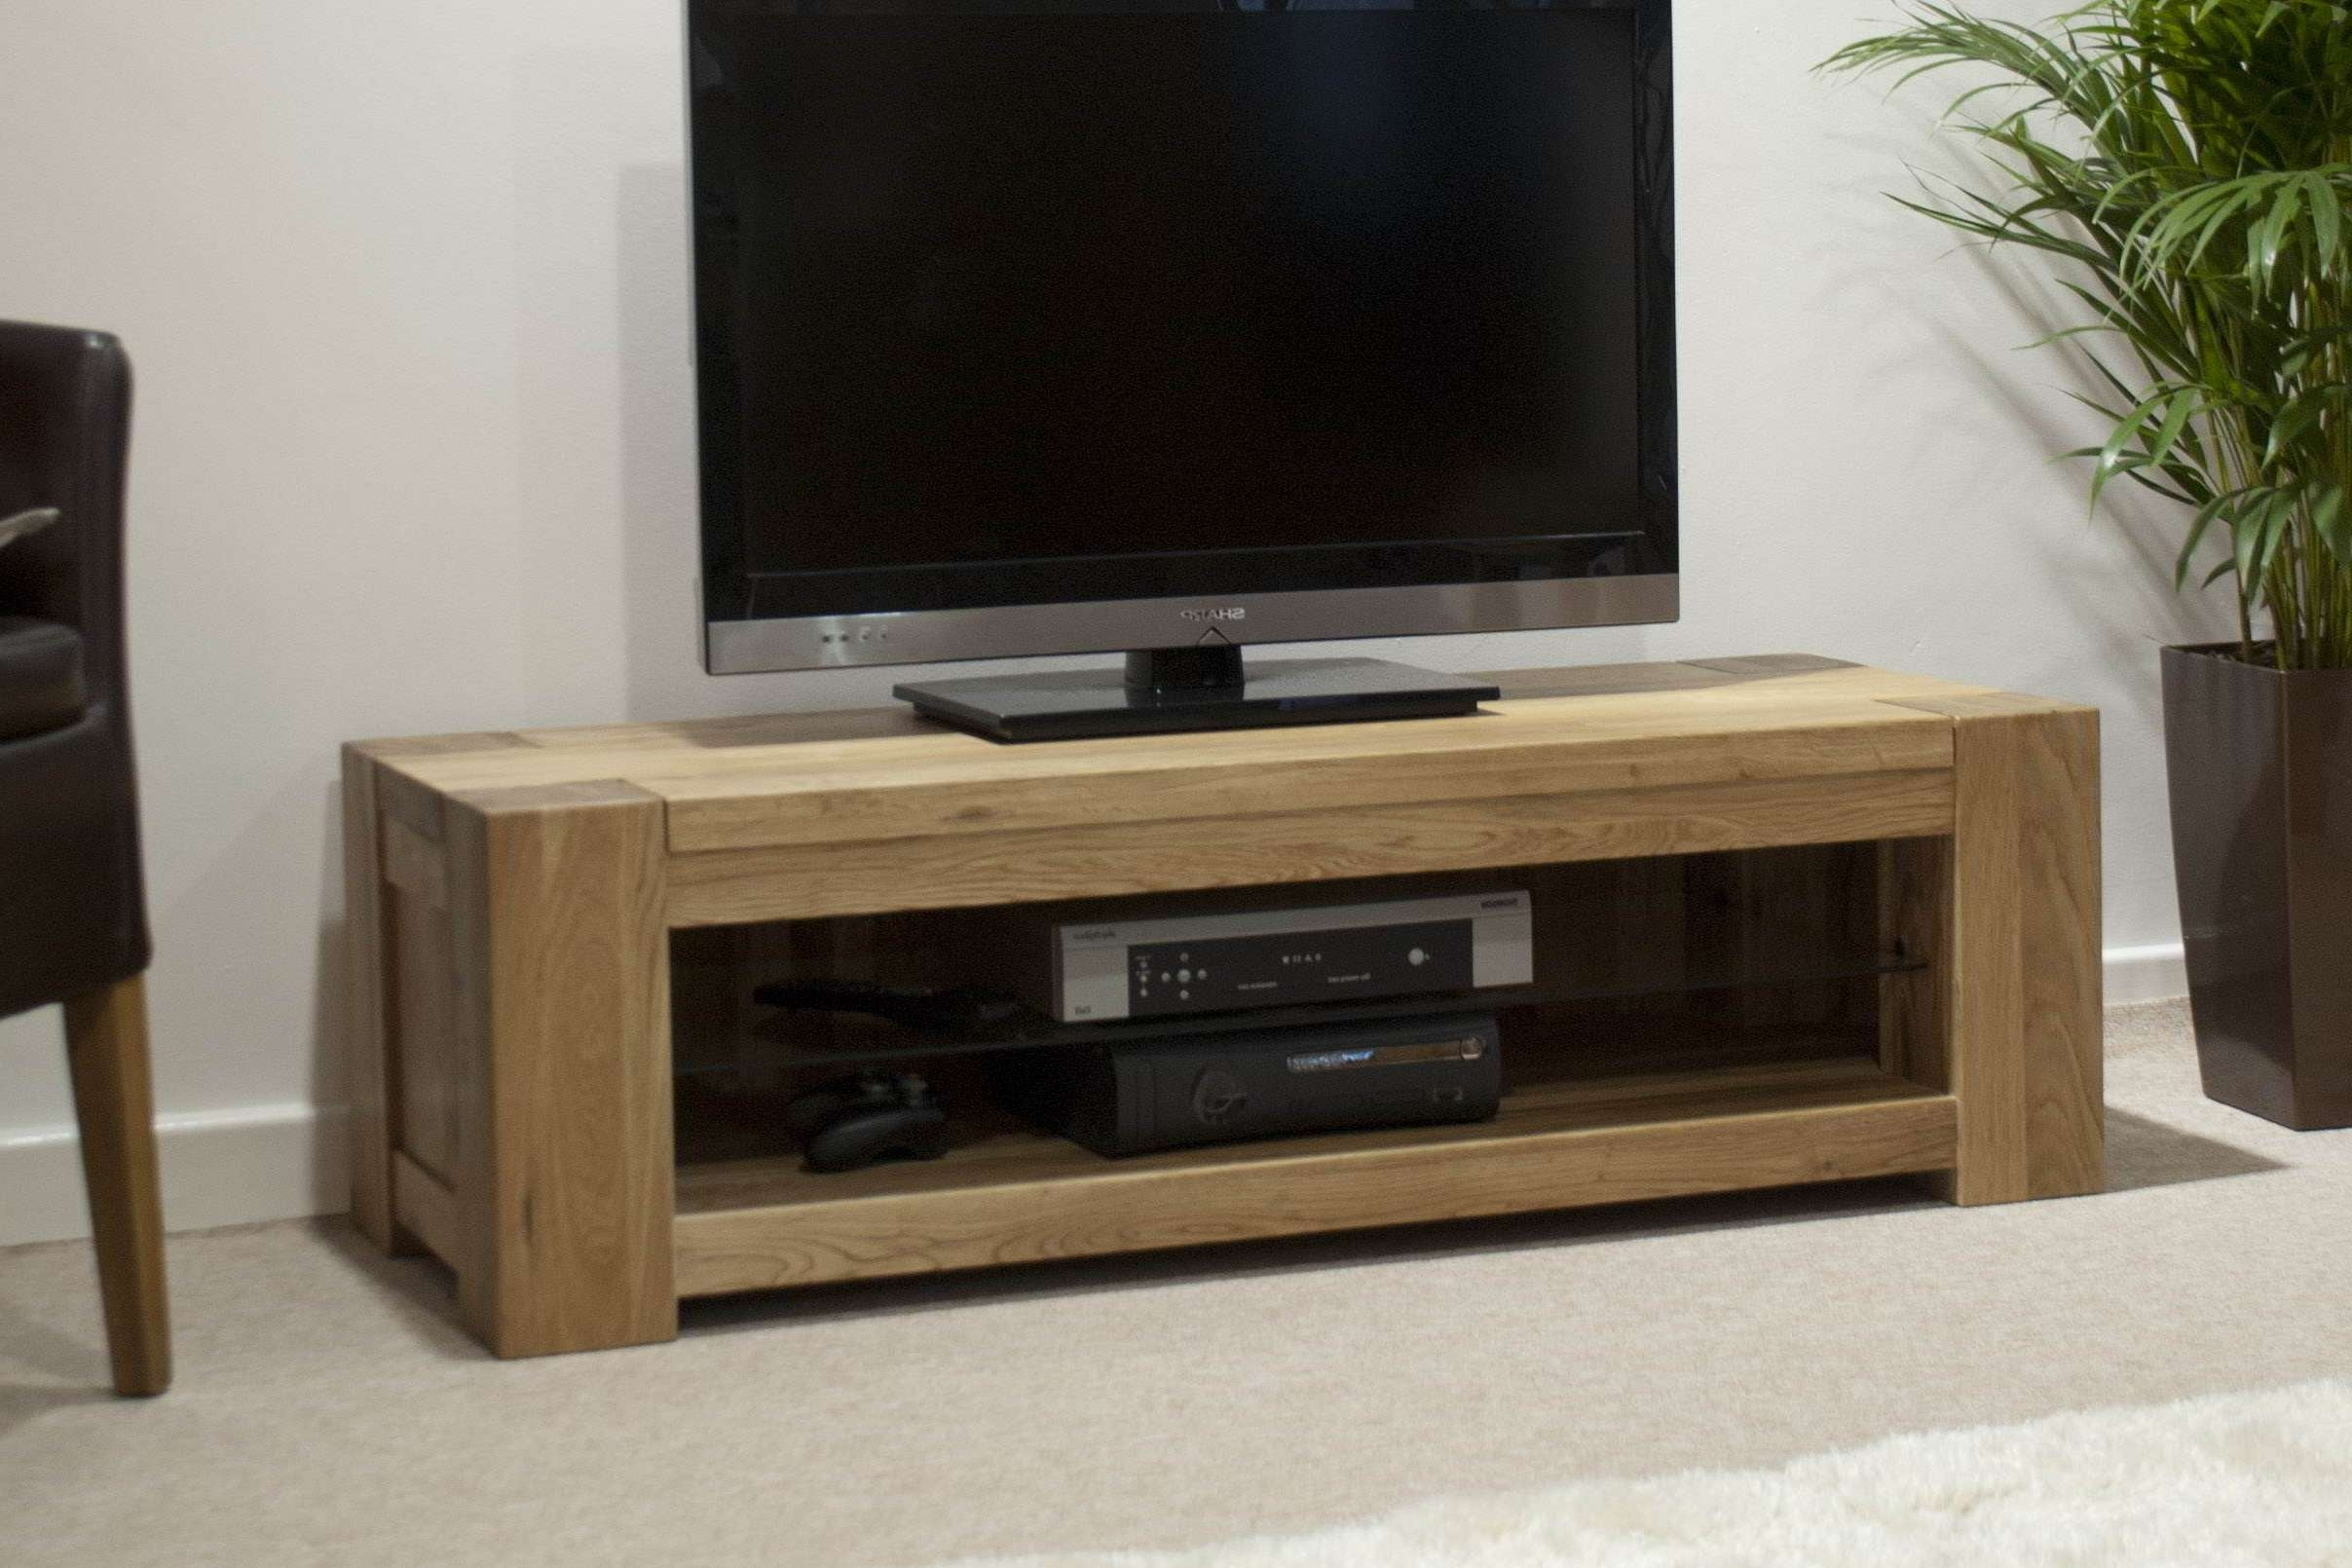 Padova Solid Oak Furniture Plasma Television Cabinet Stand Unit | Ebay With Regard To Oak Tv Stands Furniture (View 2 of 15)